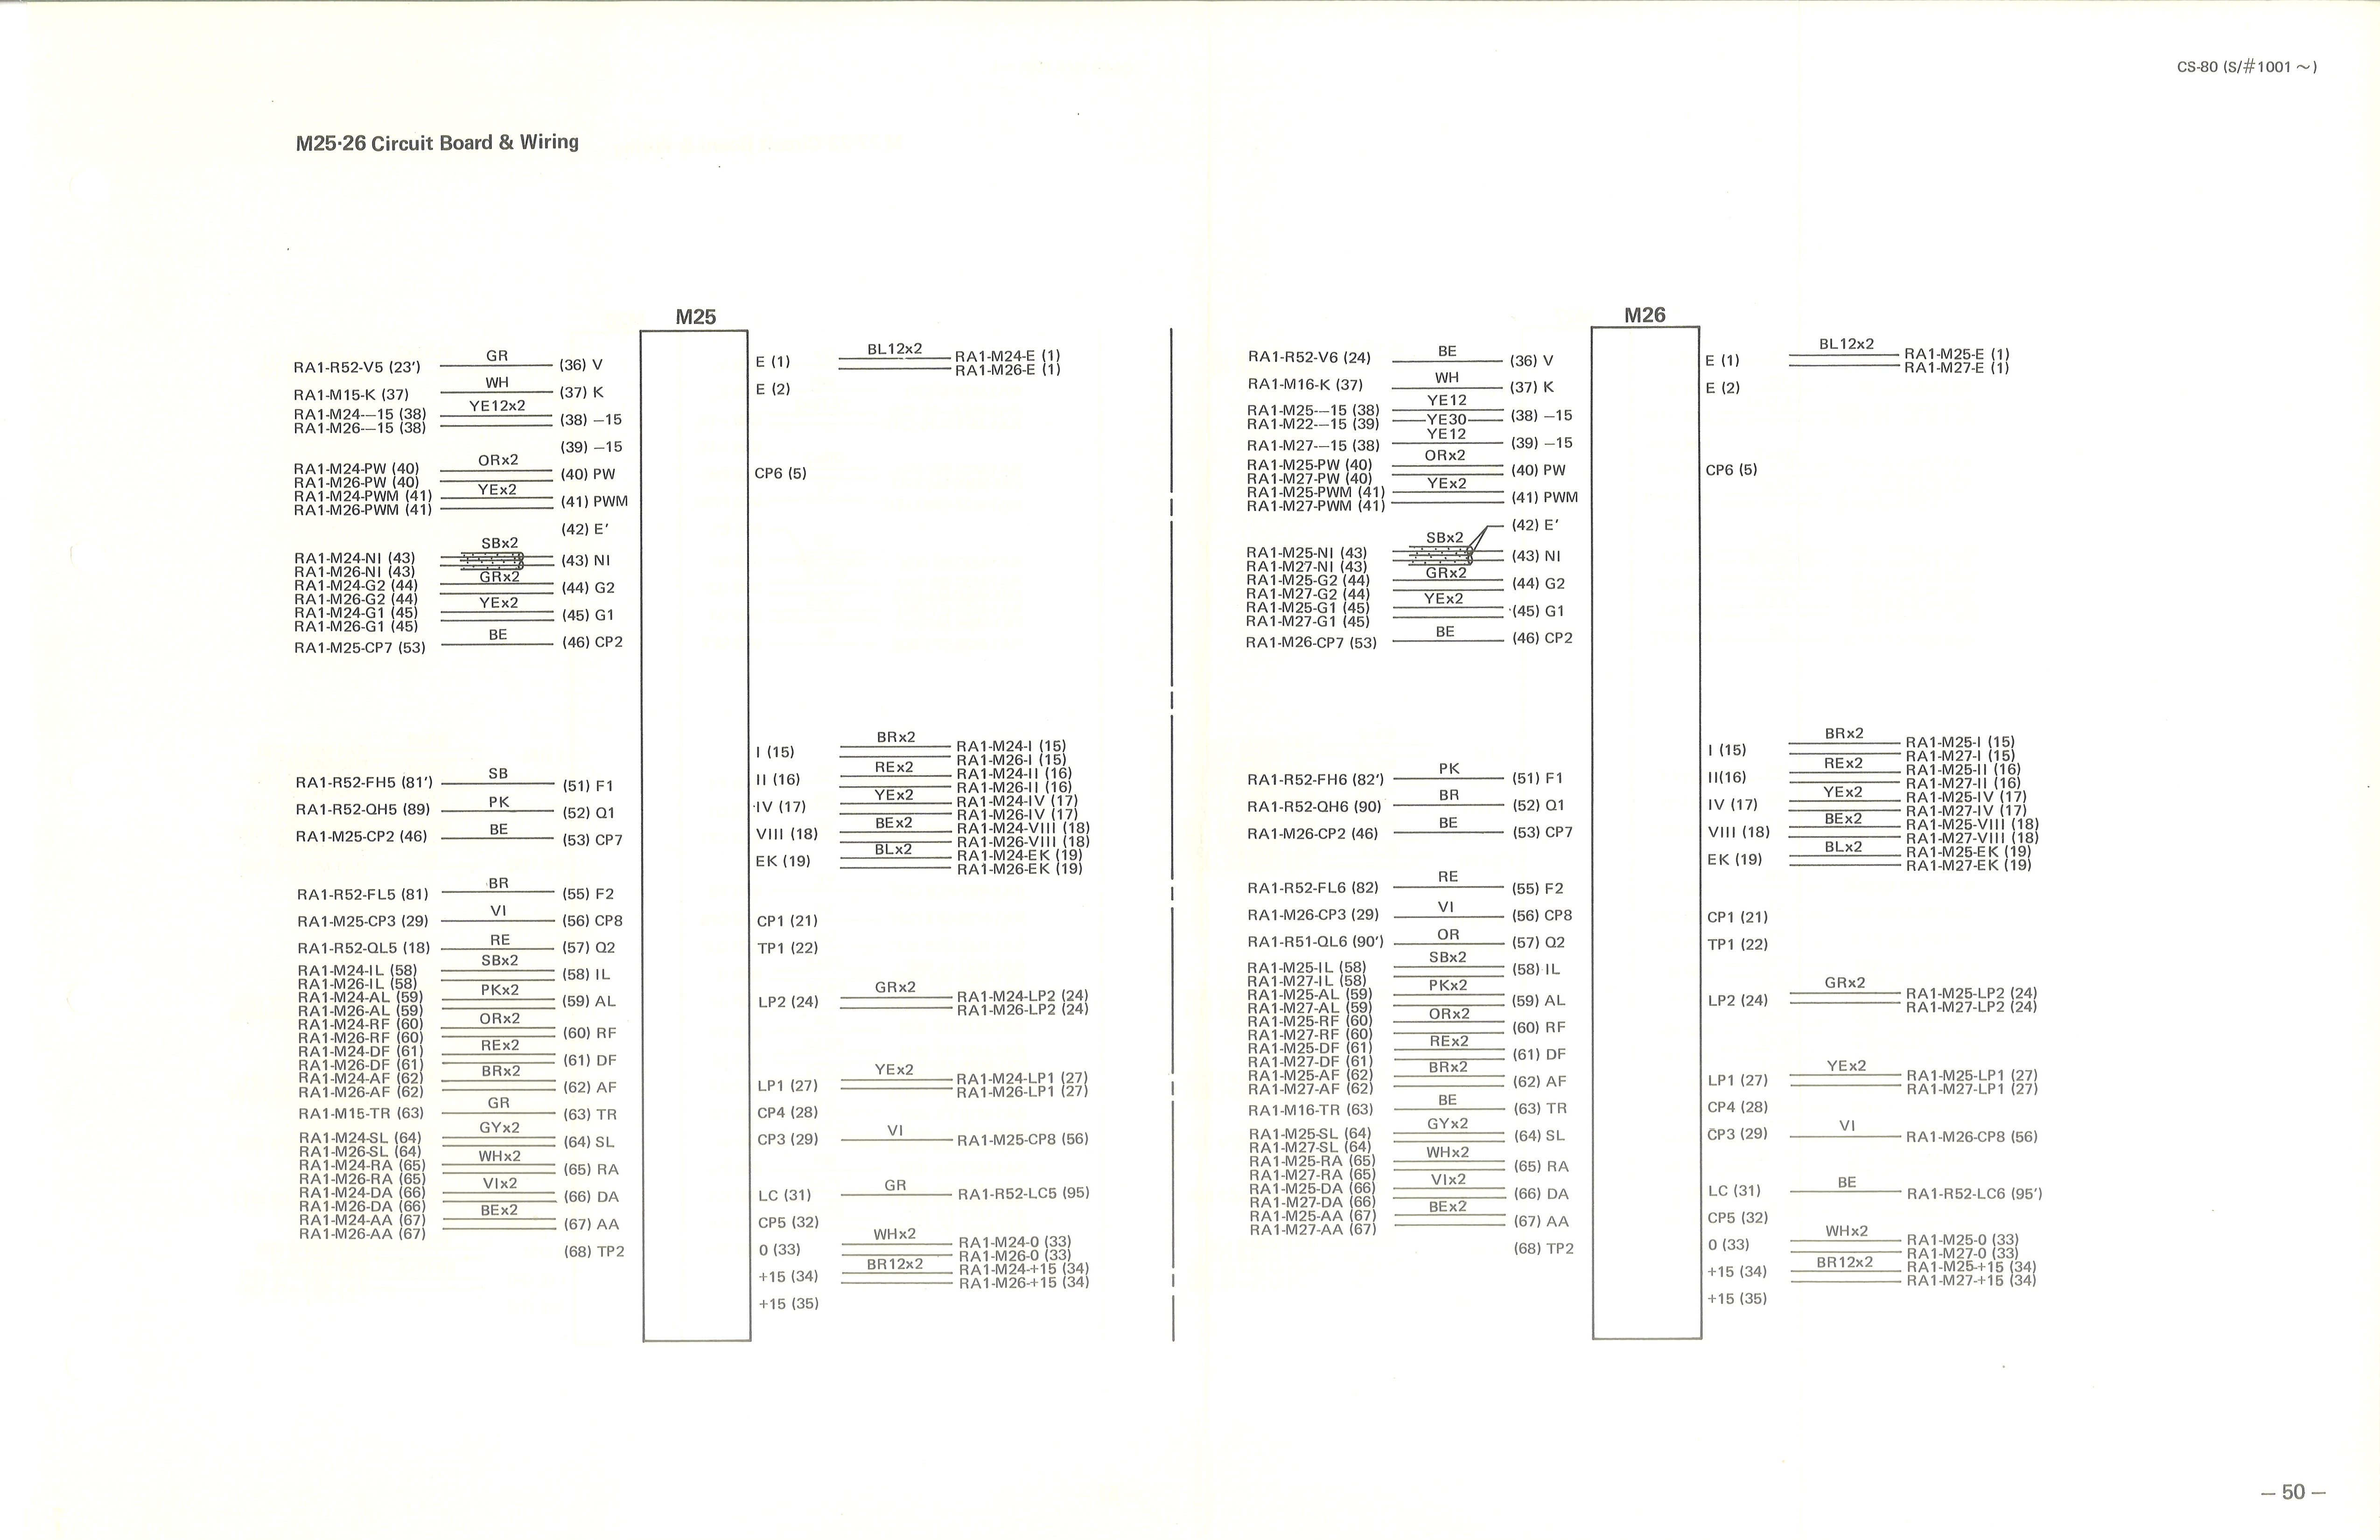 M27 Wiring Diagram Gif Phil Shauns Single Channel And 100 Revtech Coil Yamaha Cs Service Manual 51 28 Circuit Board